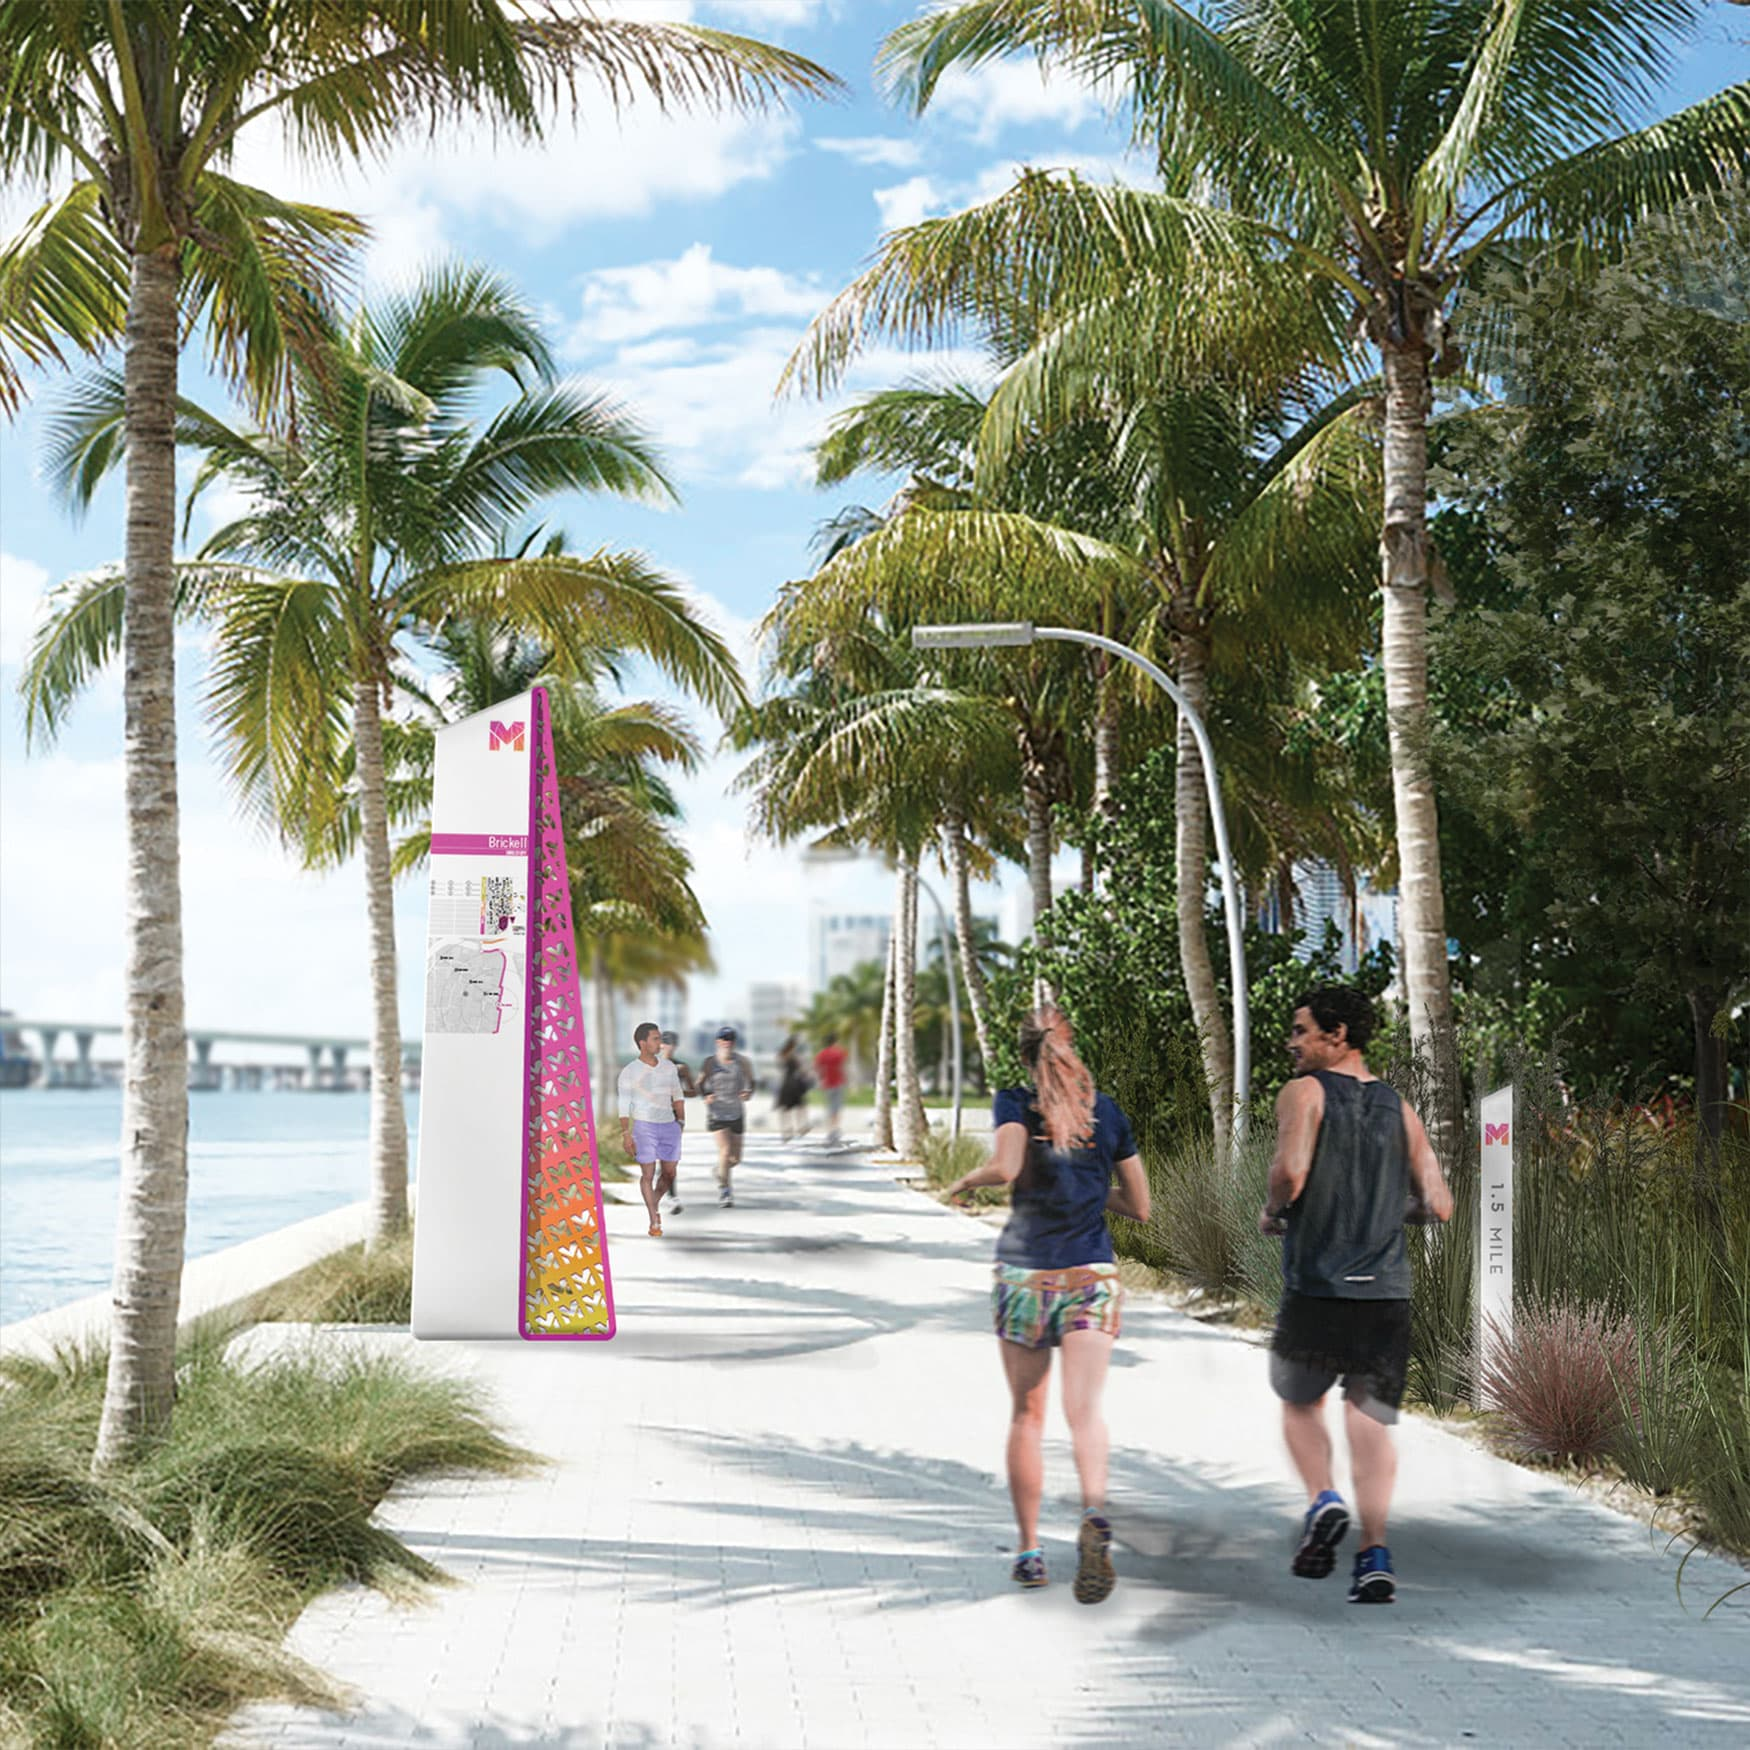 Wayfinding signage along the waterfront walkway of Miami Baywalk.